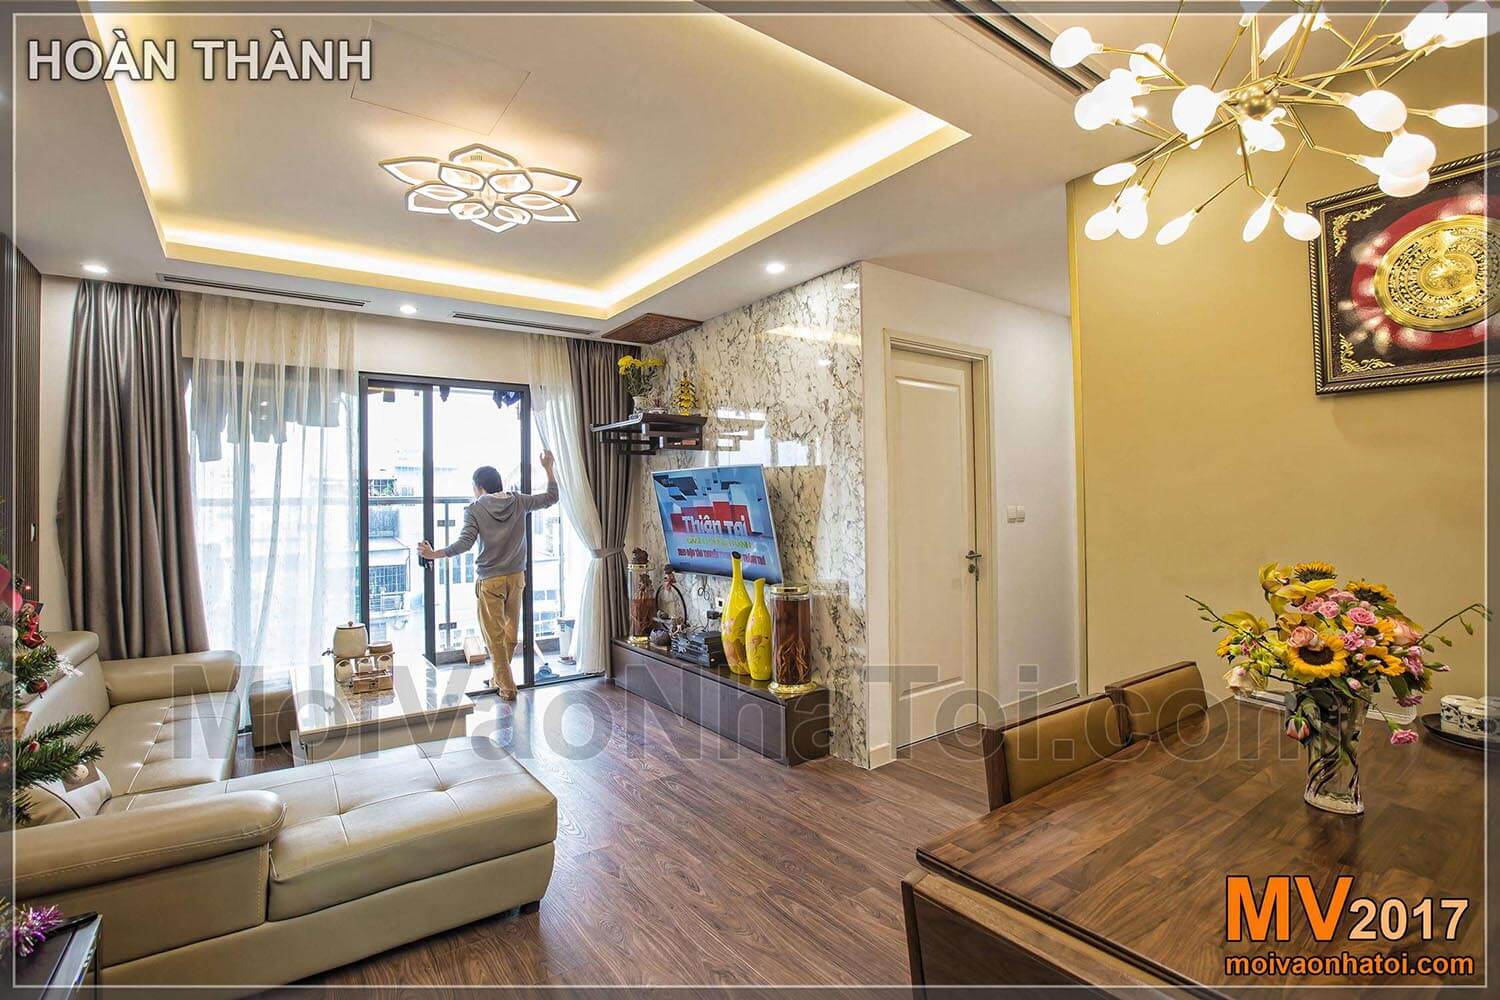 Living room with big window in IMPERIA GARDEN apartment